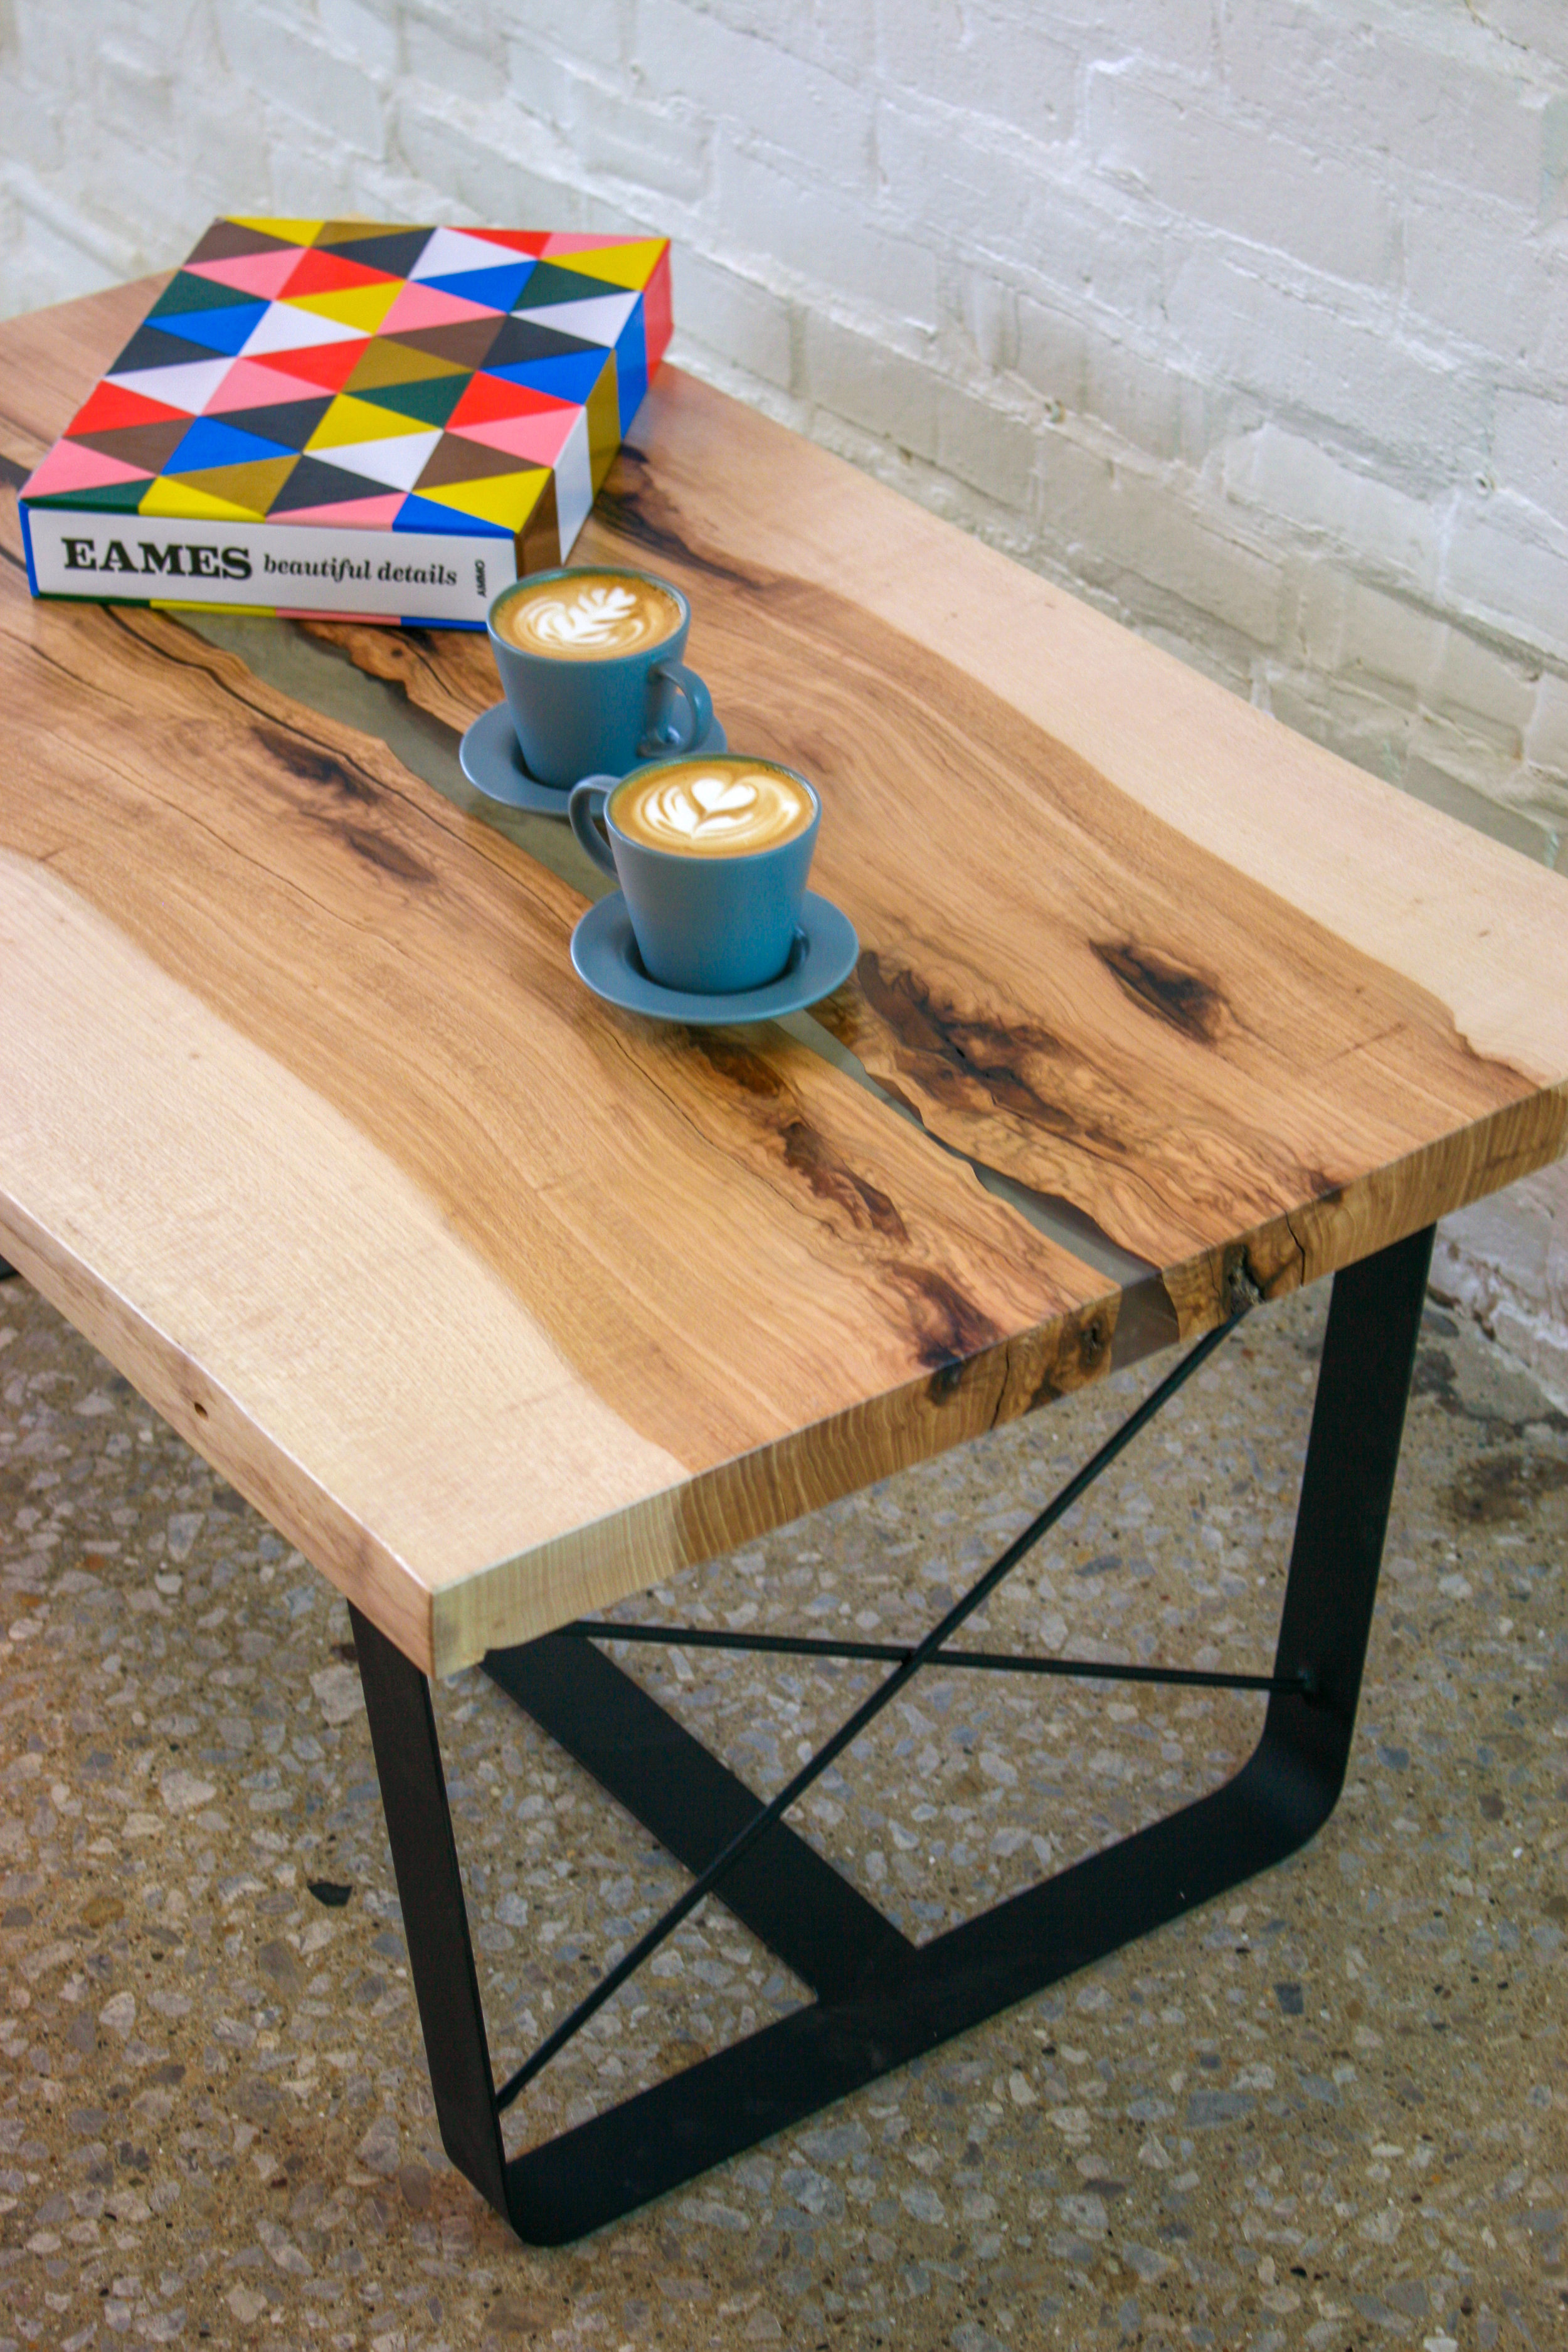 norden-at-home-custom-furniture-modern-hickory-coffee-table-3.jpg